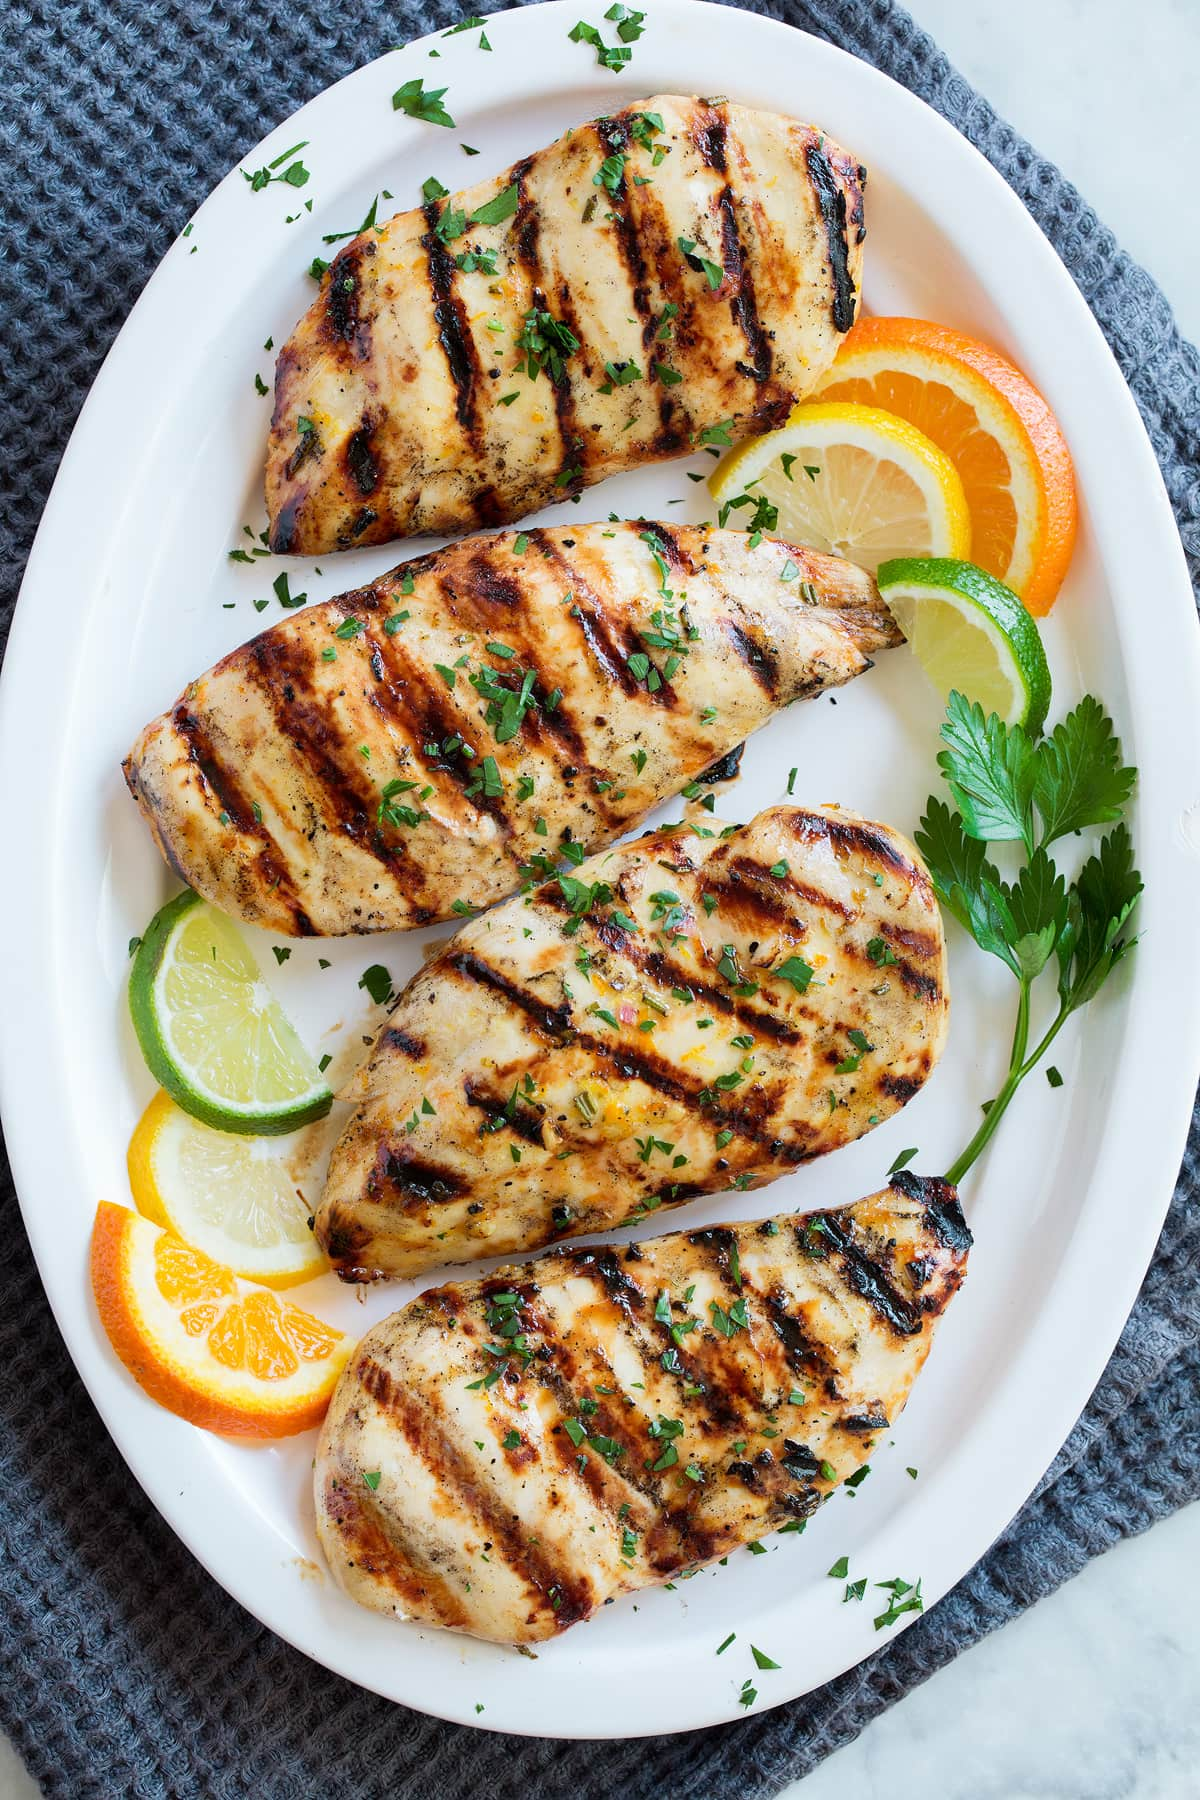 Overhead image of chicken breasts coated with marinade on a serving platter.